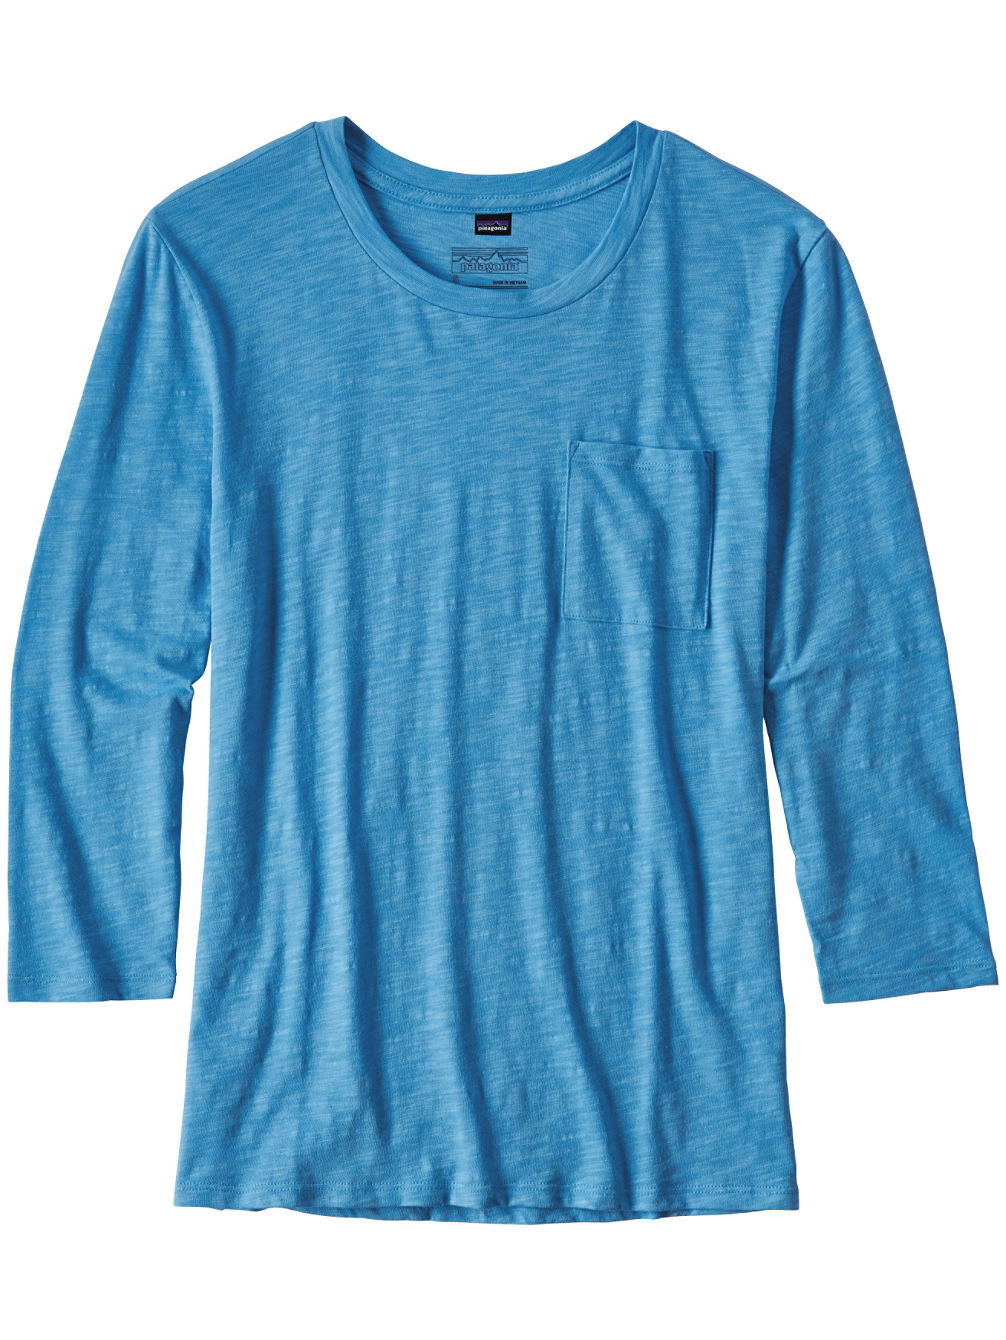 Mainstay 3/4 Sleeved T-Shirt LS